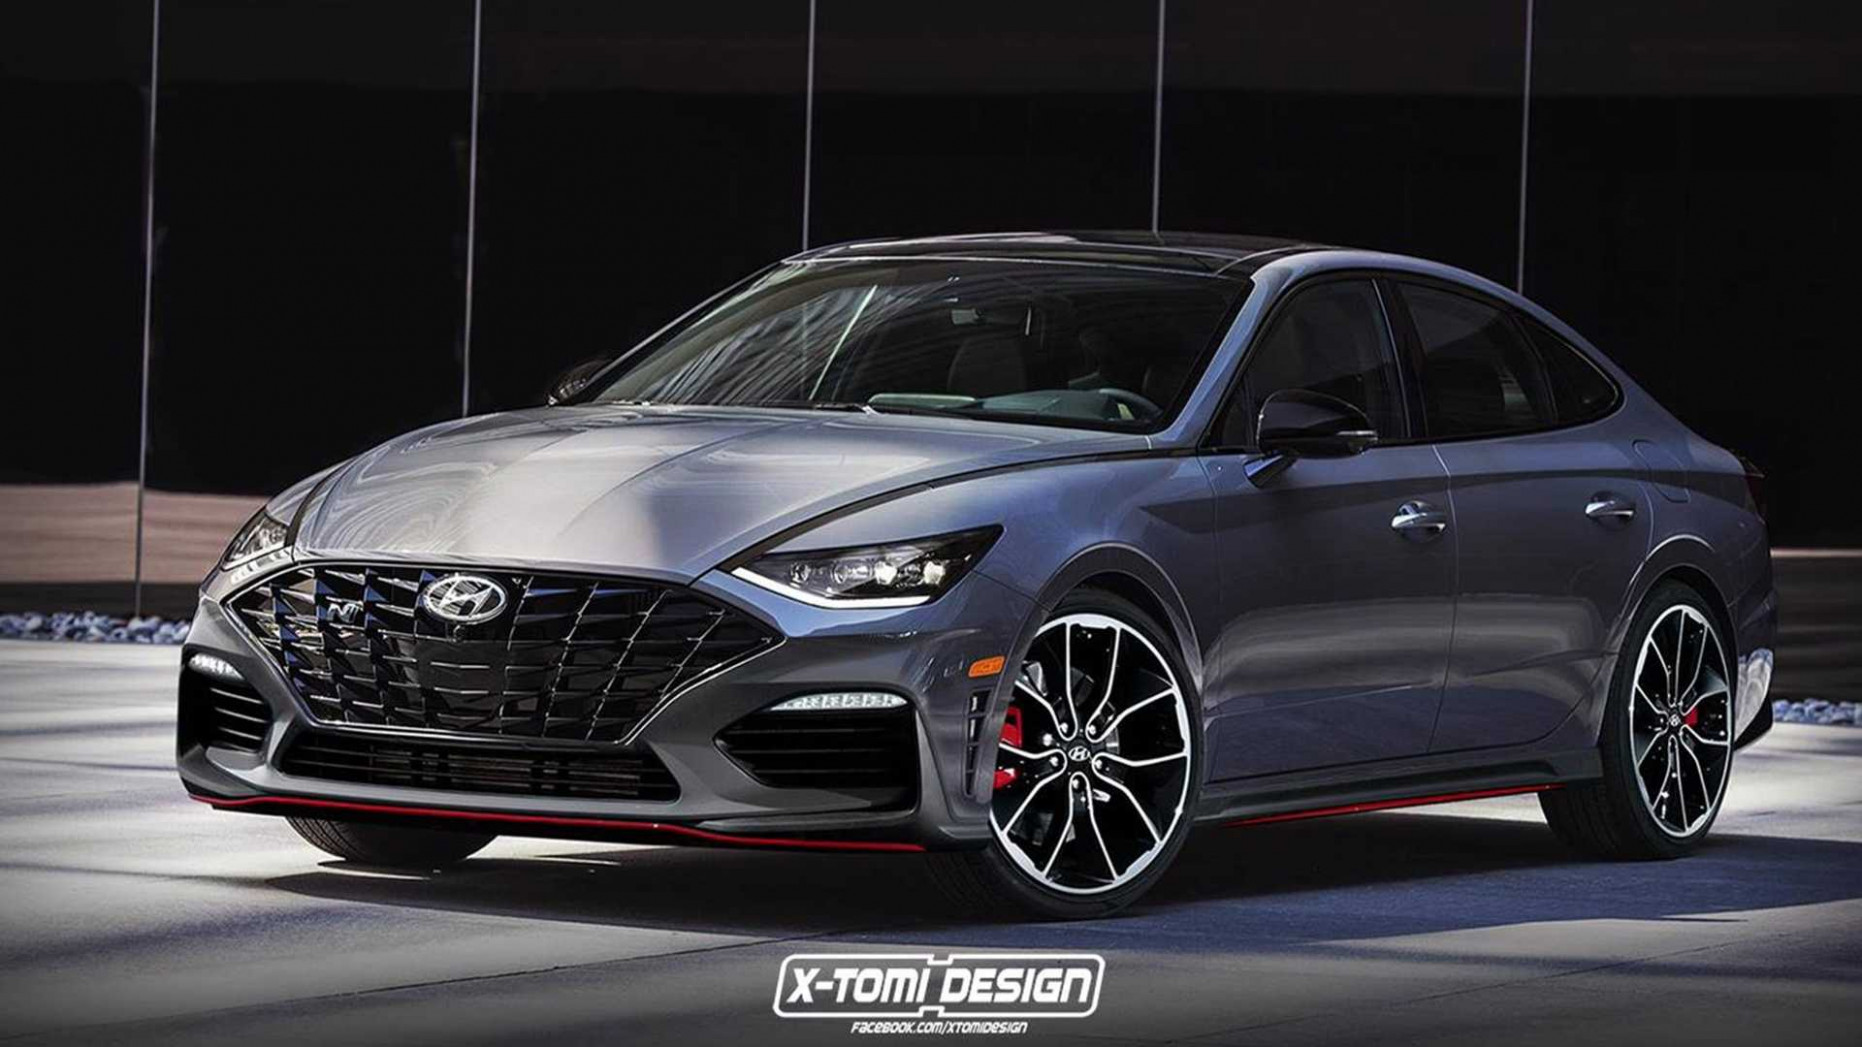 Spy Shoot When Is The 2022 Hyundai Sonata Coming Out